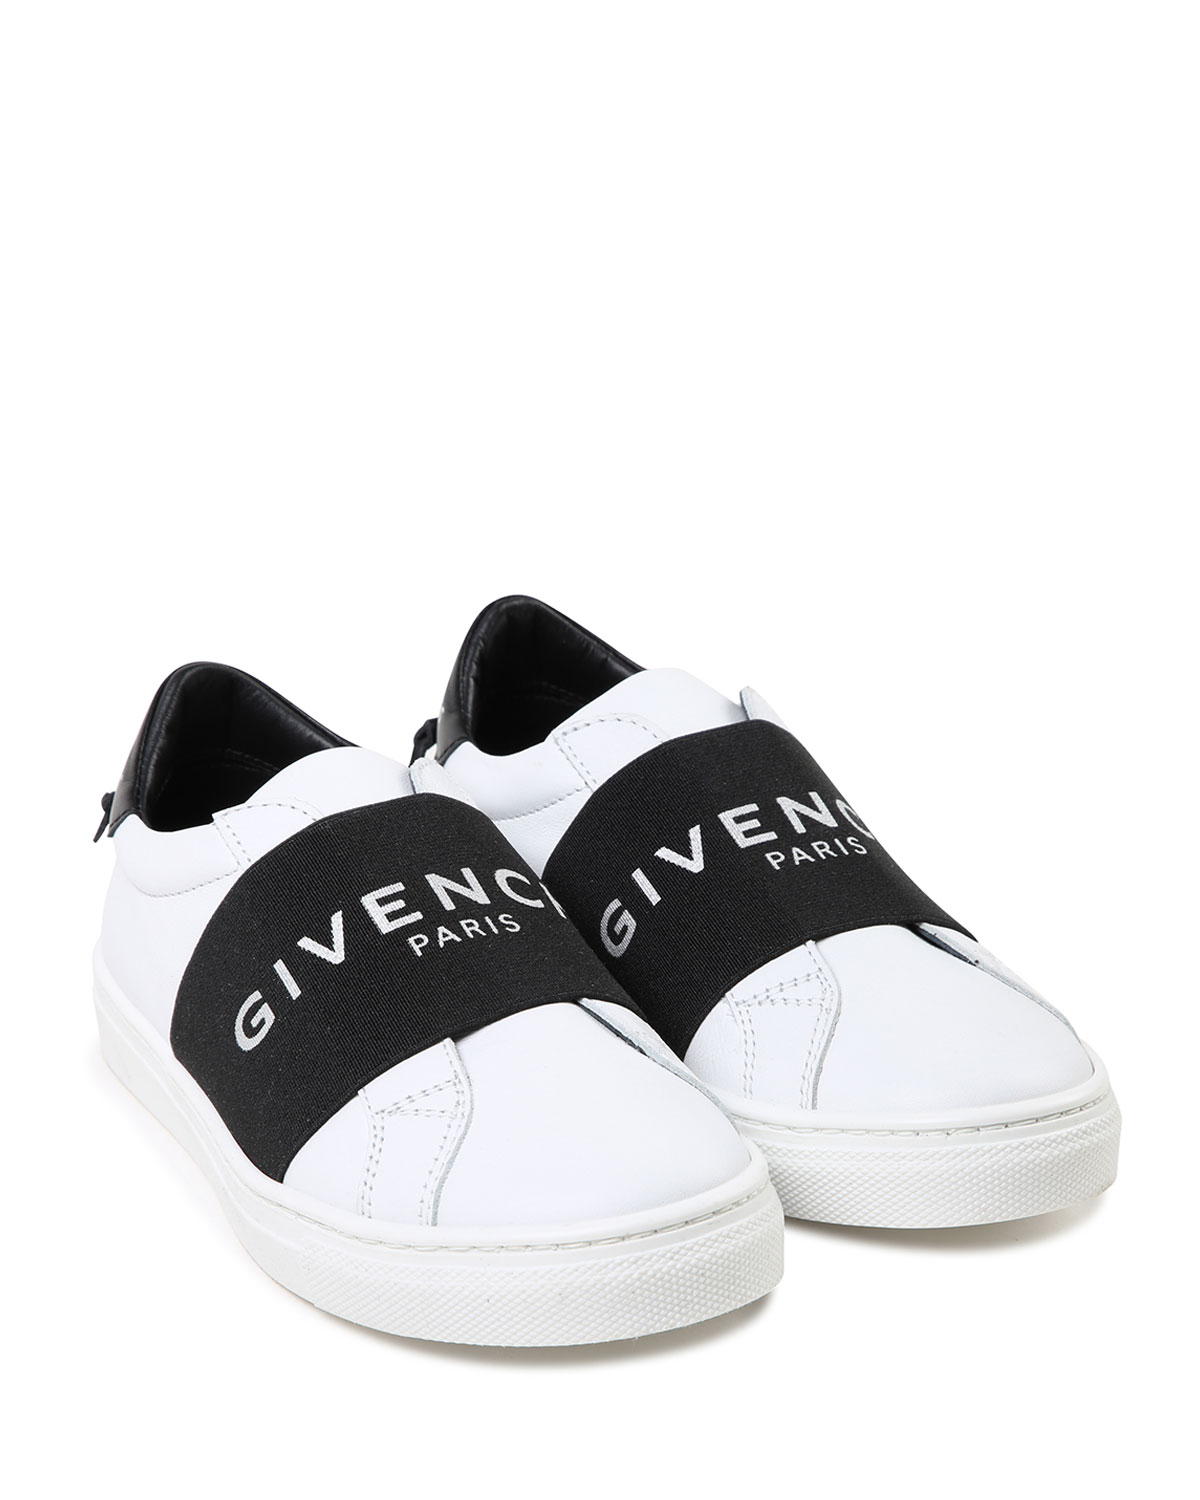 64f65b6484c0 Givenchy Two-Tone Logo Band Sneakers